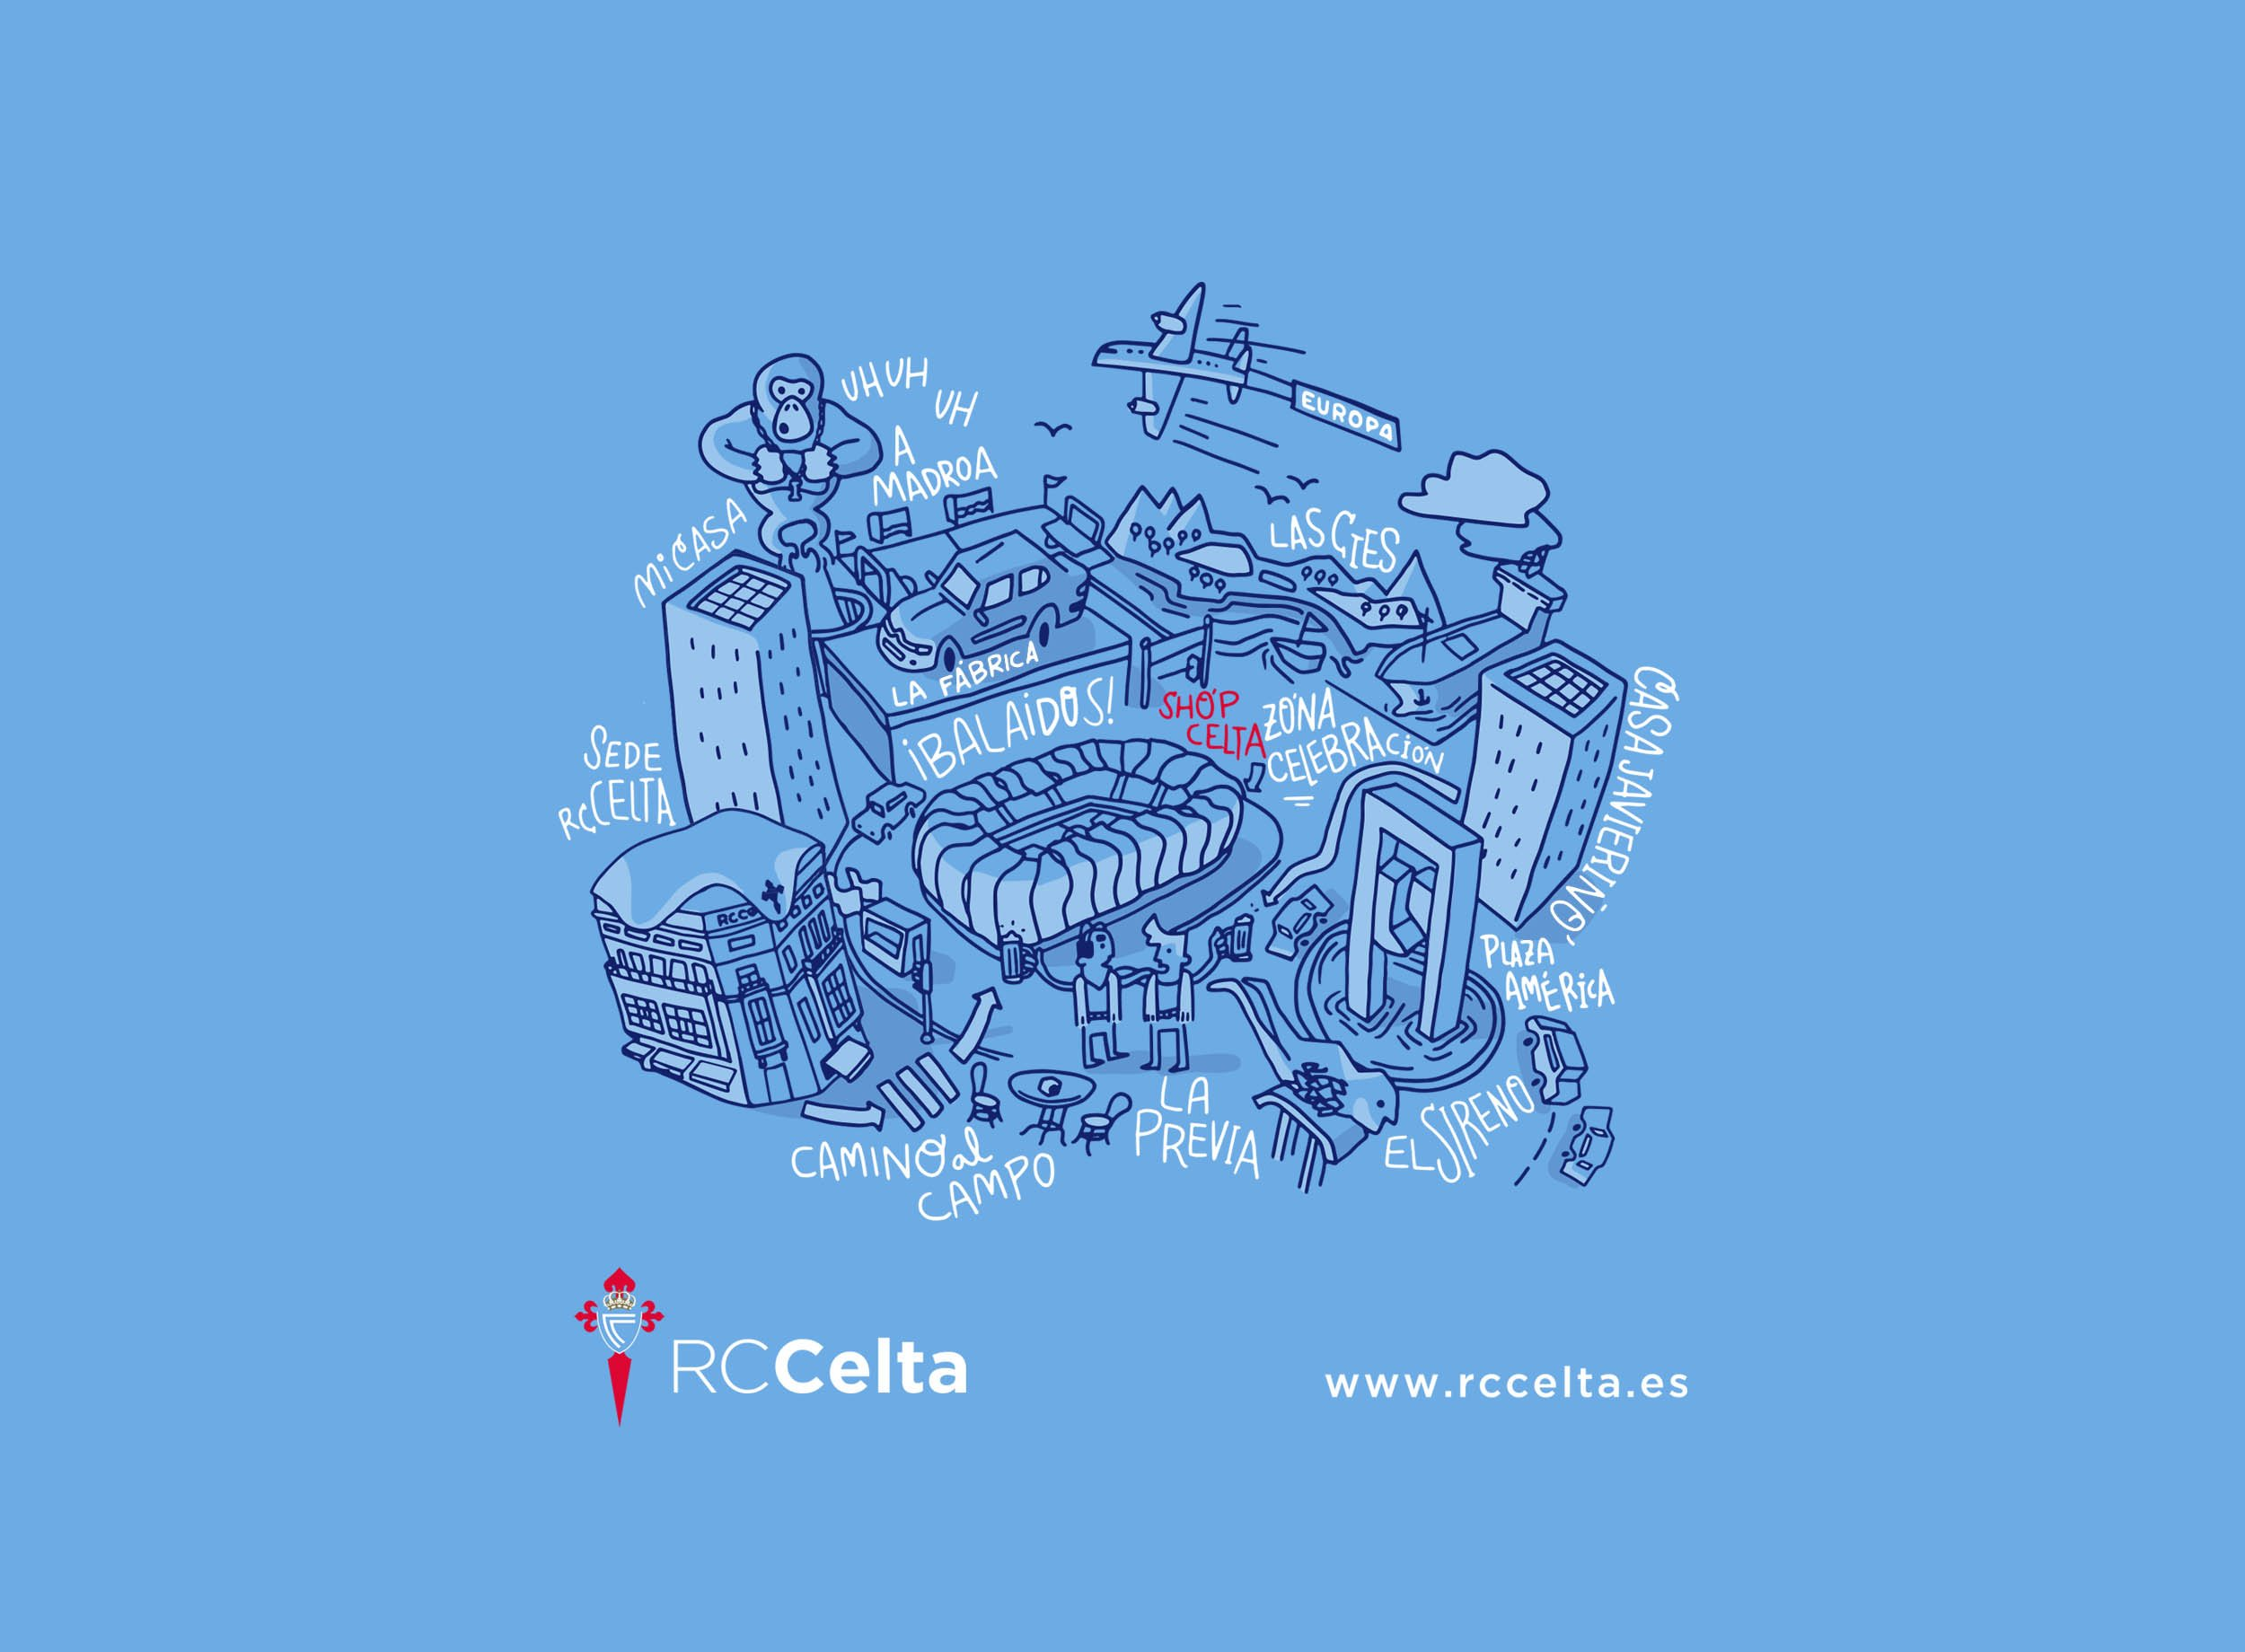 Design illustration RC Celta